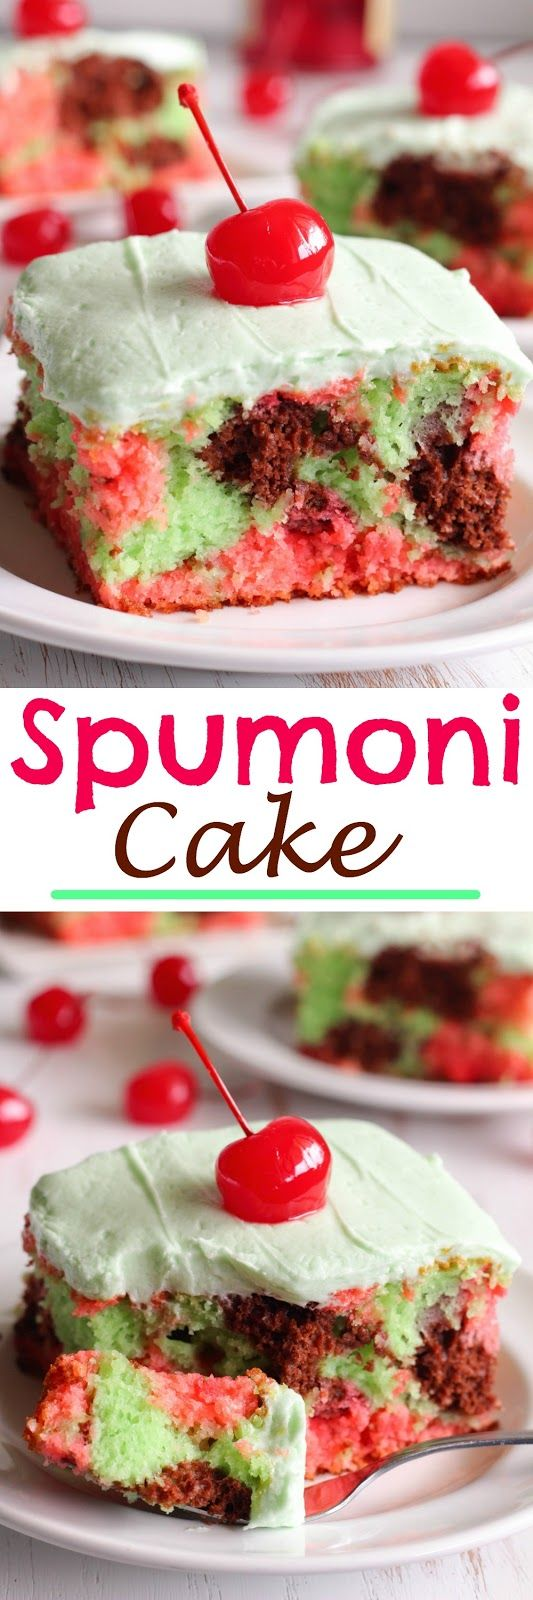 Spumoni Cake - Chocolate, Cherry and Pistachio Cake topped with creamy buttercream and maraschino cherries.